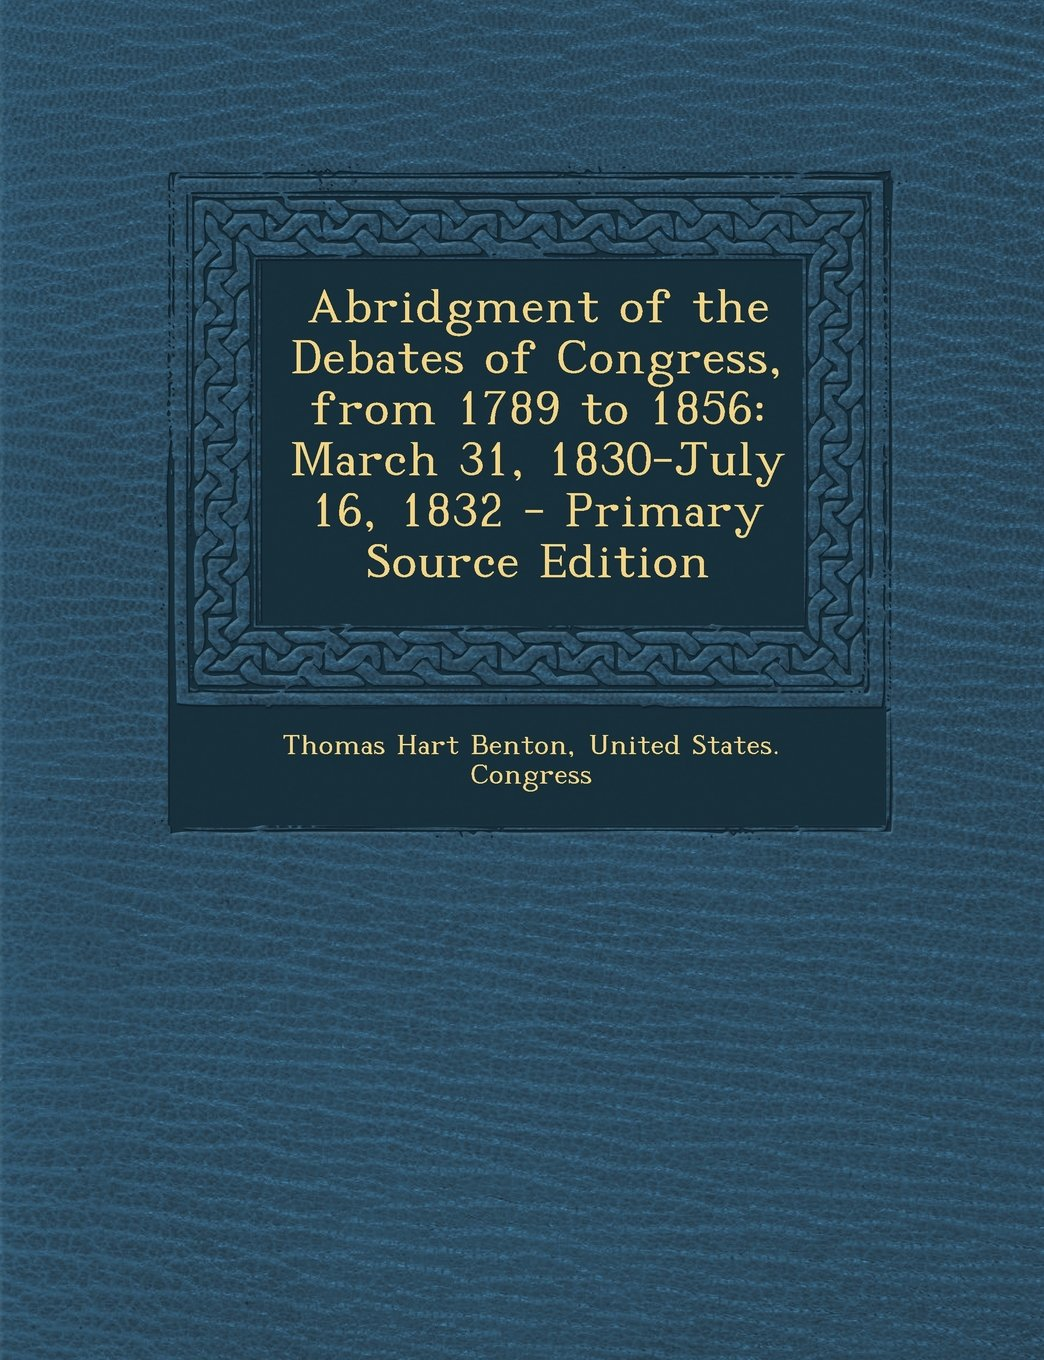 Abridgment of the Debates of Congress, from 1789 to 1856: March 31, 1830-July 16, 1832 - Primary Source Edition pdf epub